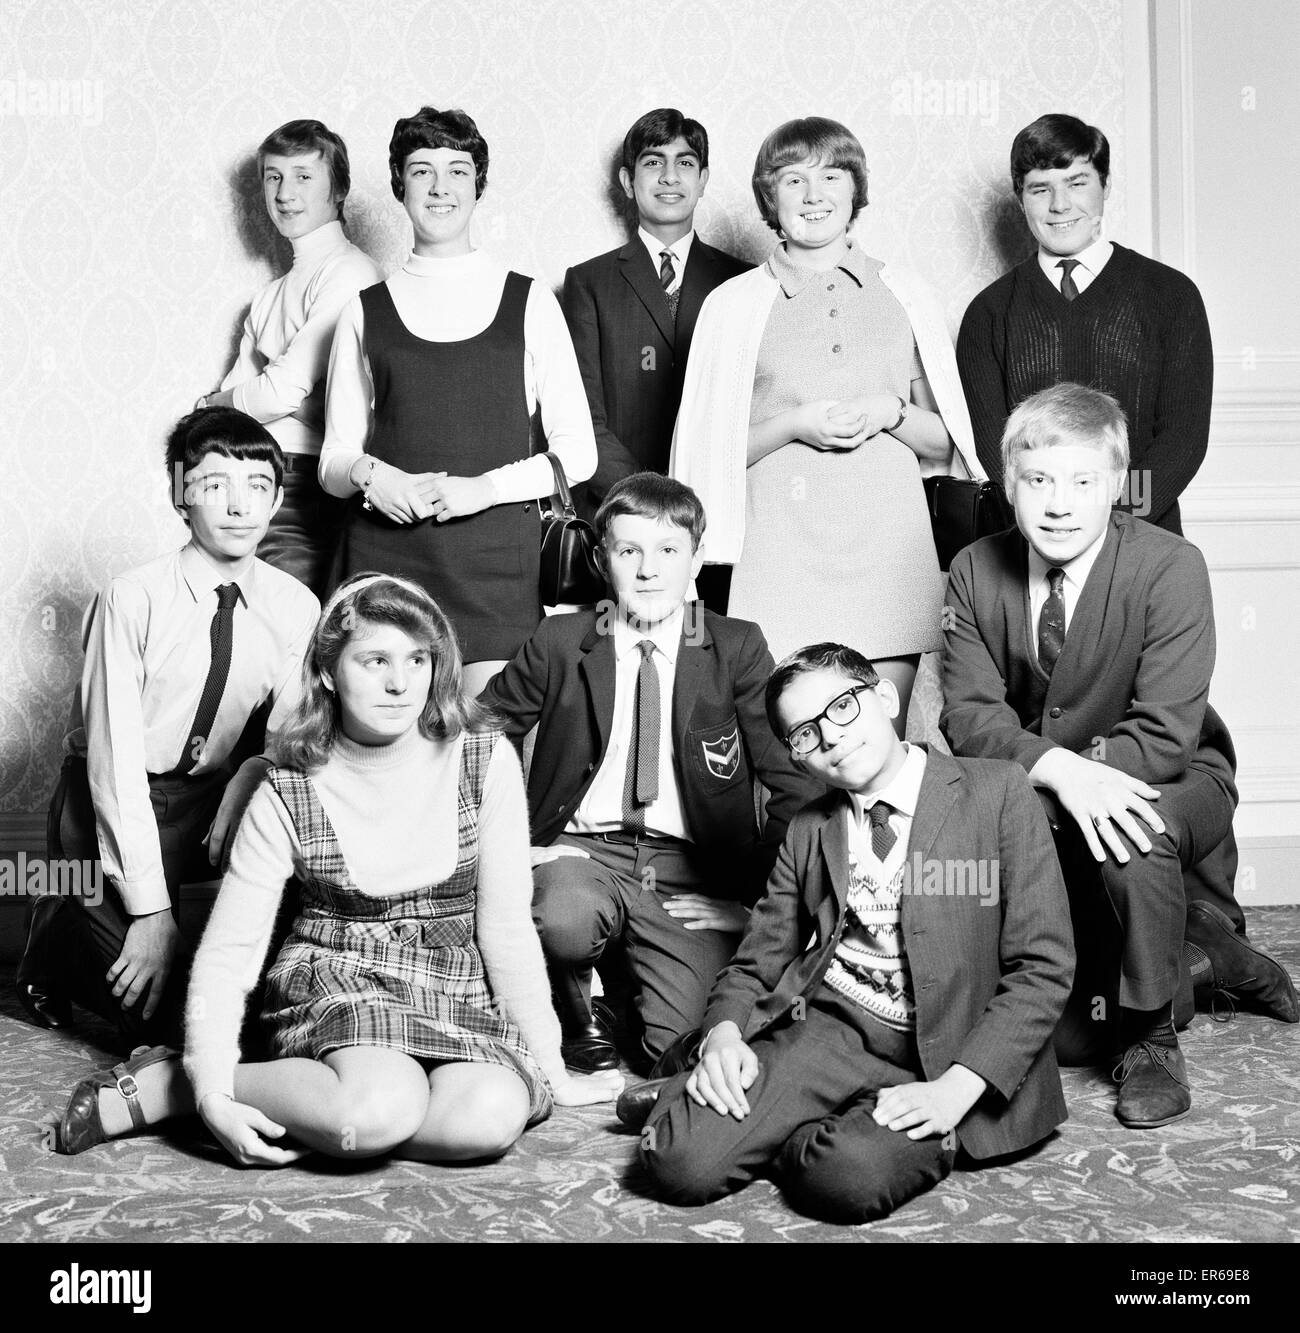 Daily Mirror Newspaper Boy or Girl of the Year Contest 1969